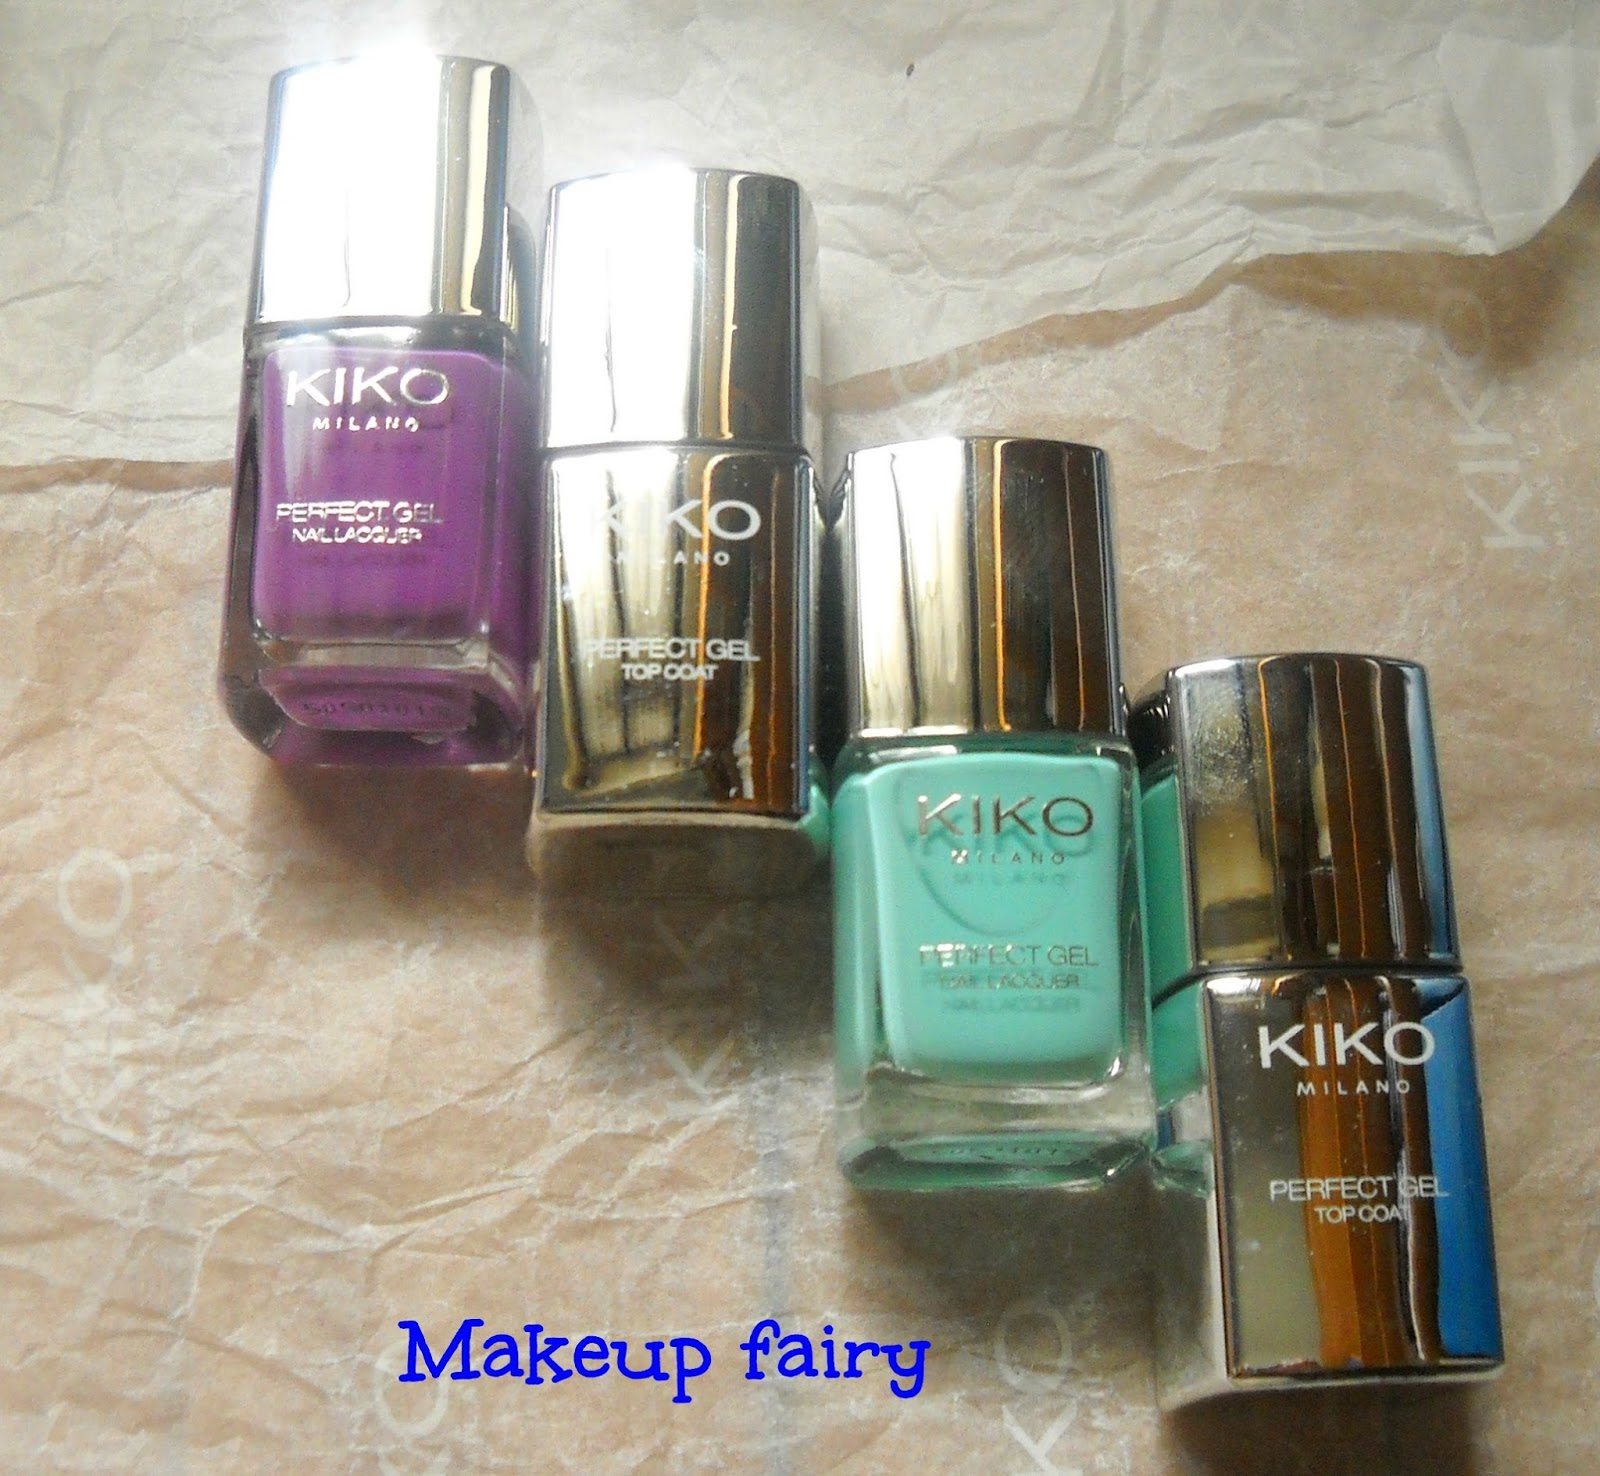 Tinklesmakeup: One Product review : Kiko perfect gel duo nail lacquer